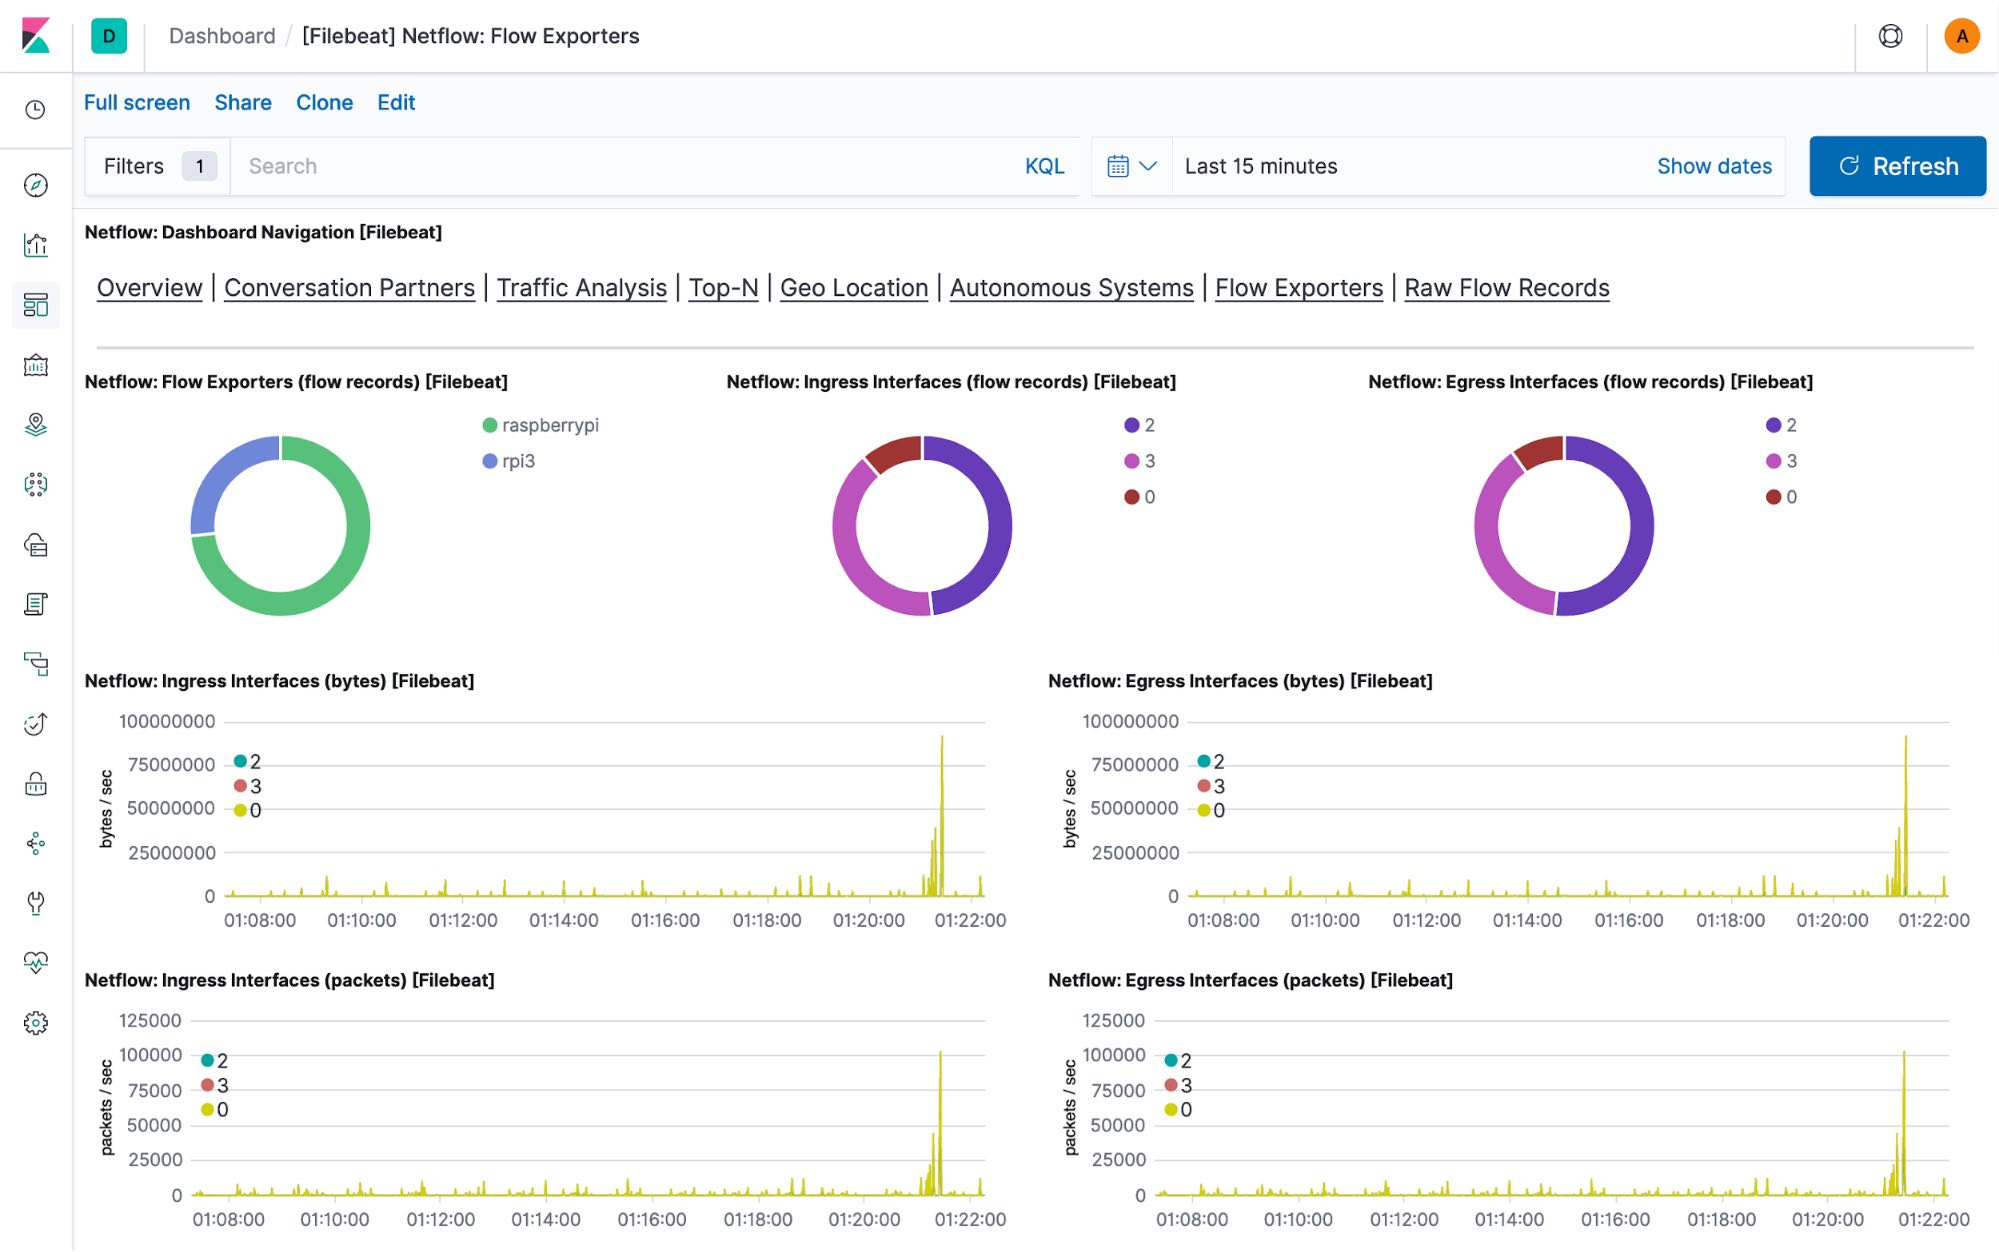 New in 7.4.0, the Netflow flow exporter dashboard